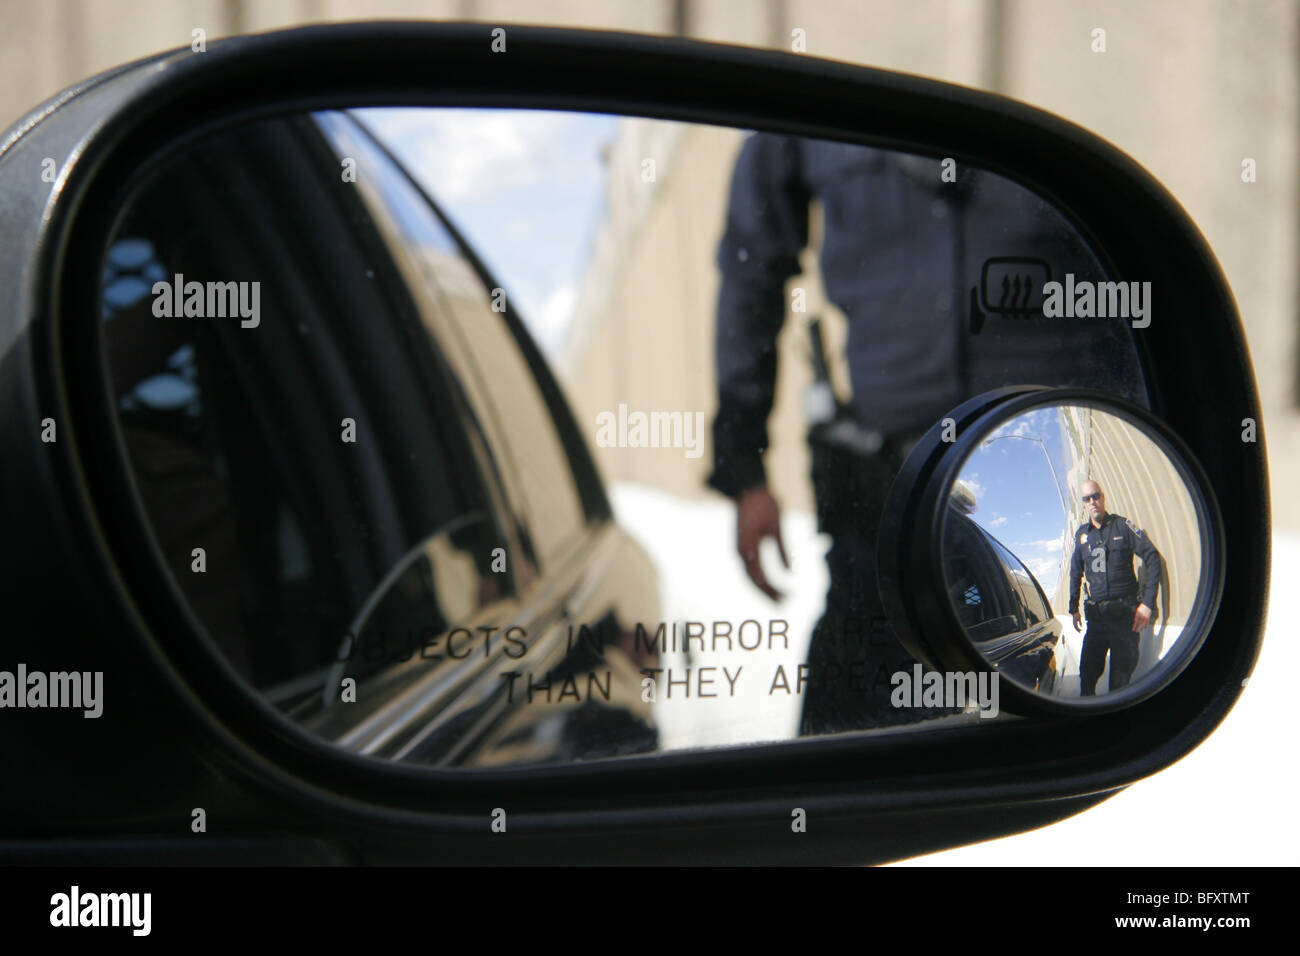 American cop reflected in car wing mirror. - Stock Image